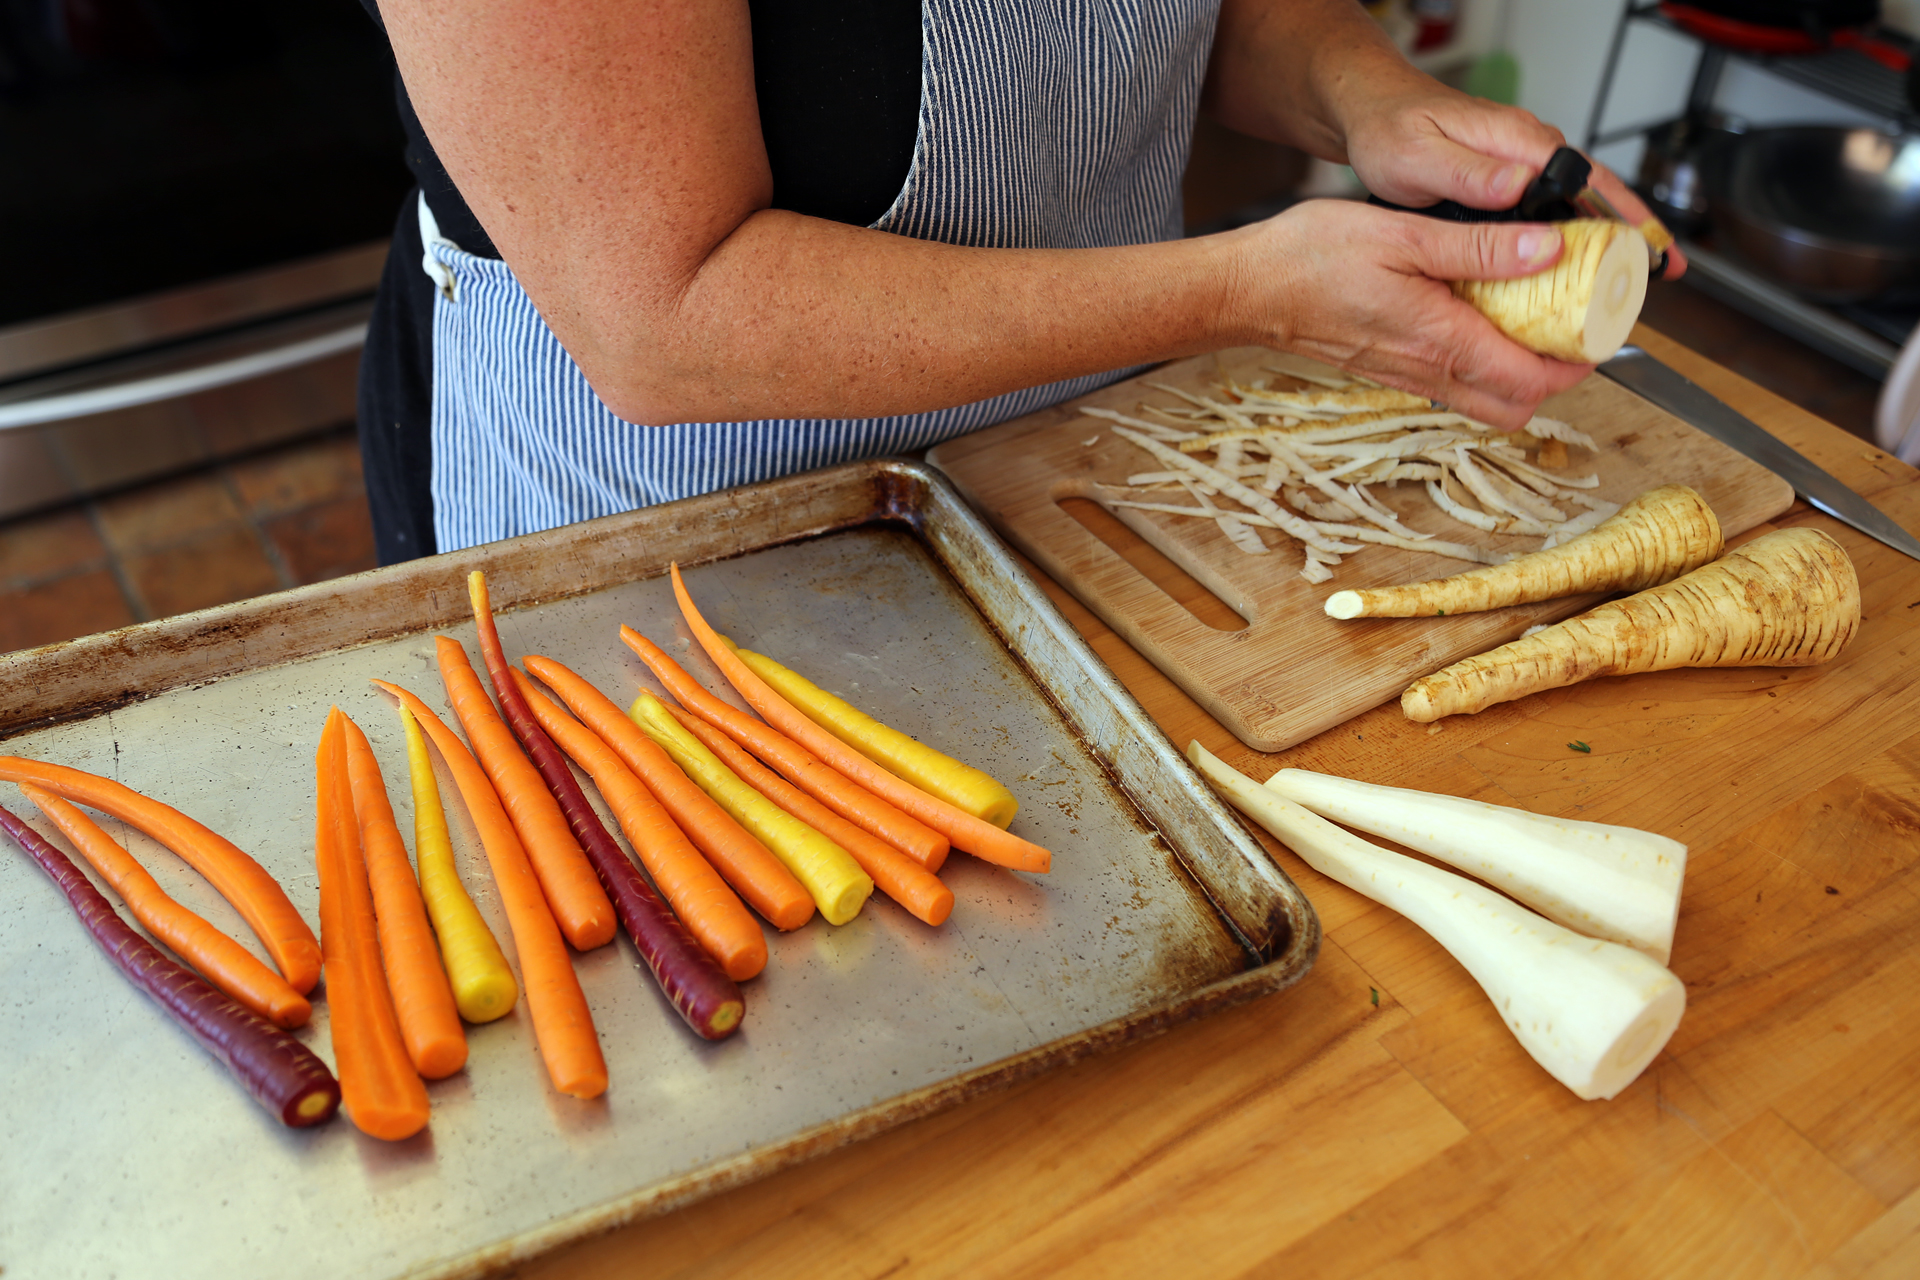 Trim and peel the parsnips.